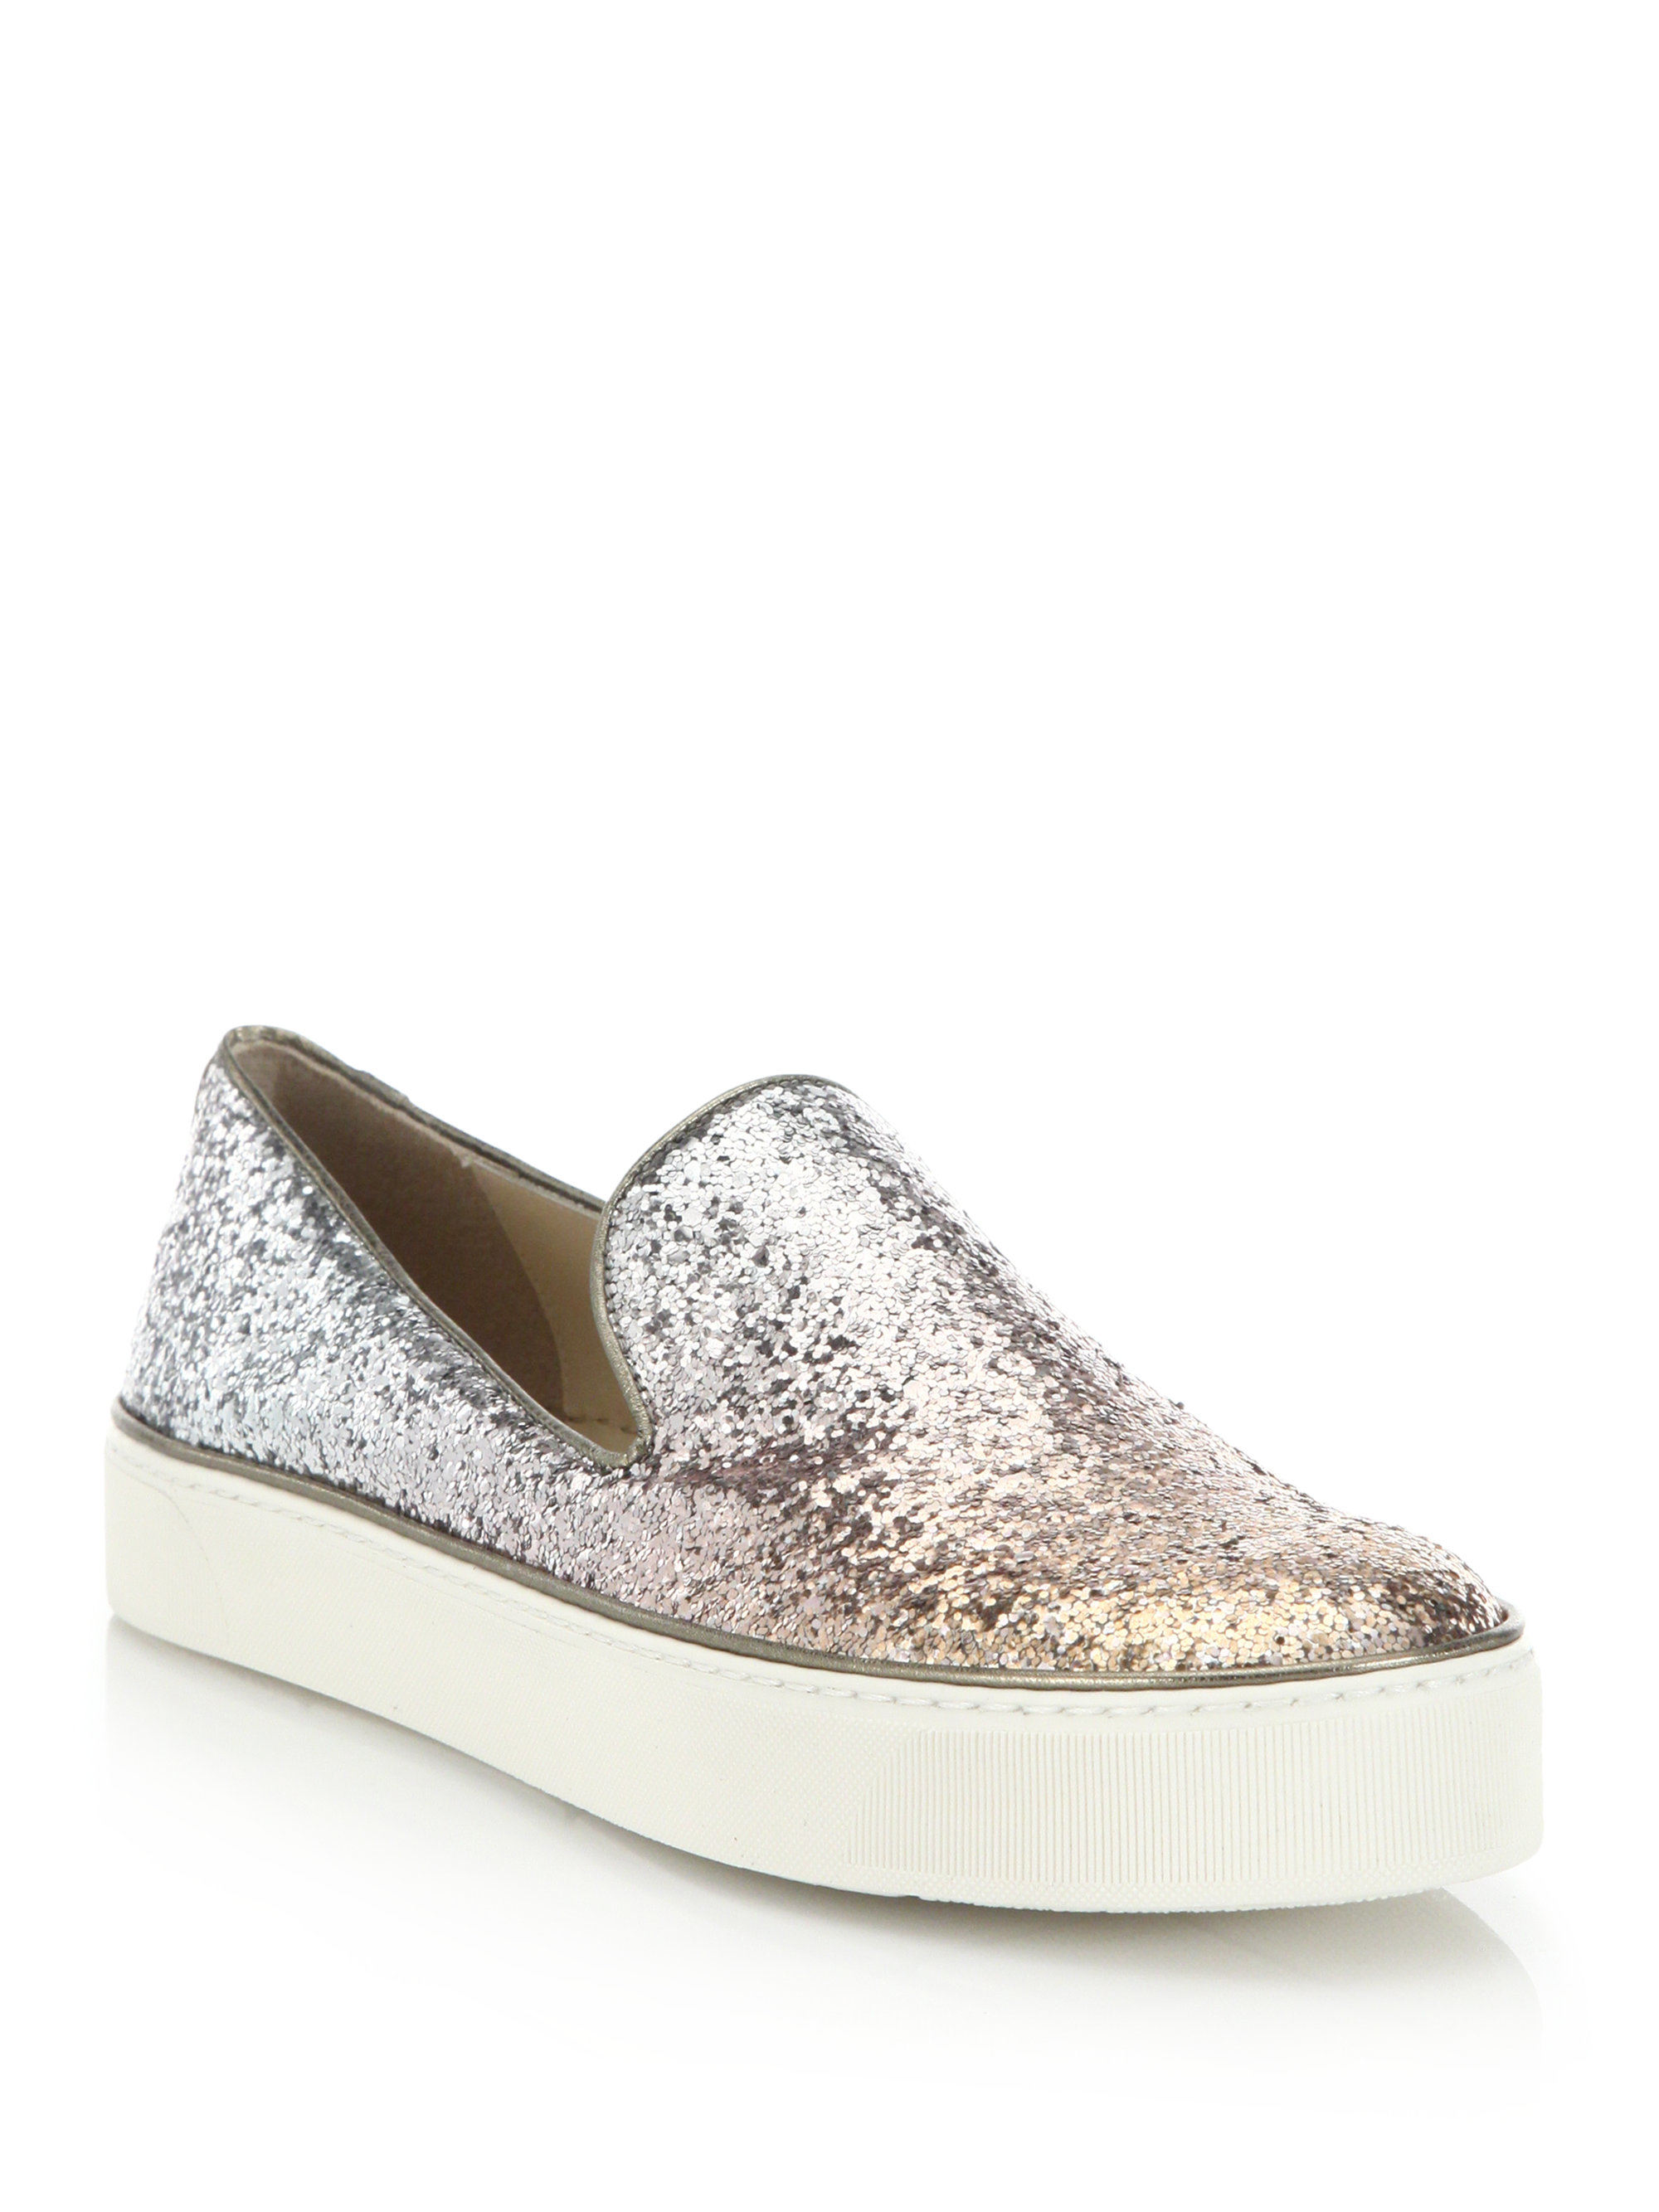 get to buy Stuart Weitzman Suede Perforated Sneakers newest cheap price Manchester for sale UYJ17CB4J